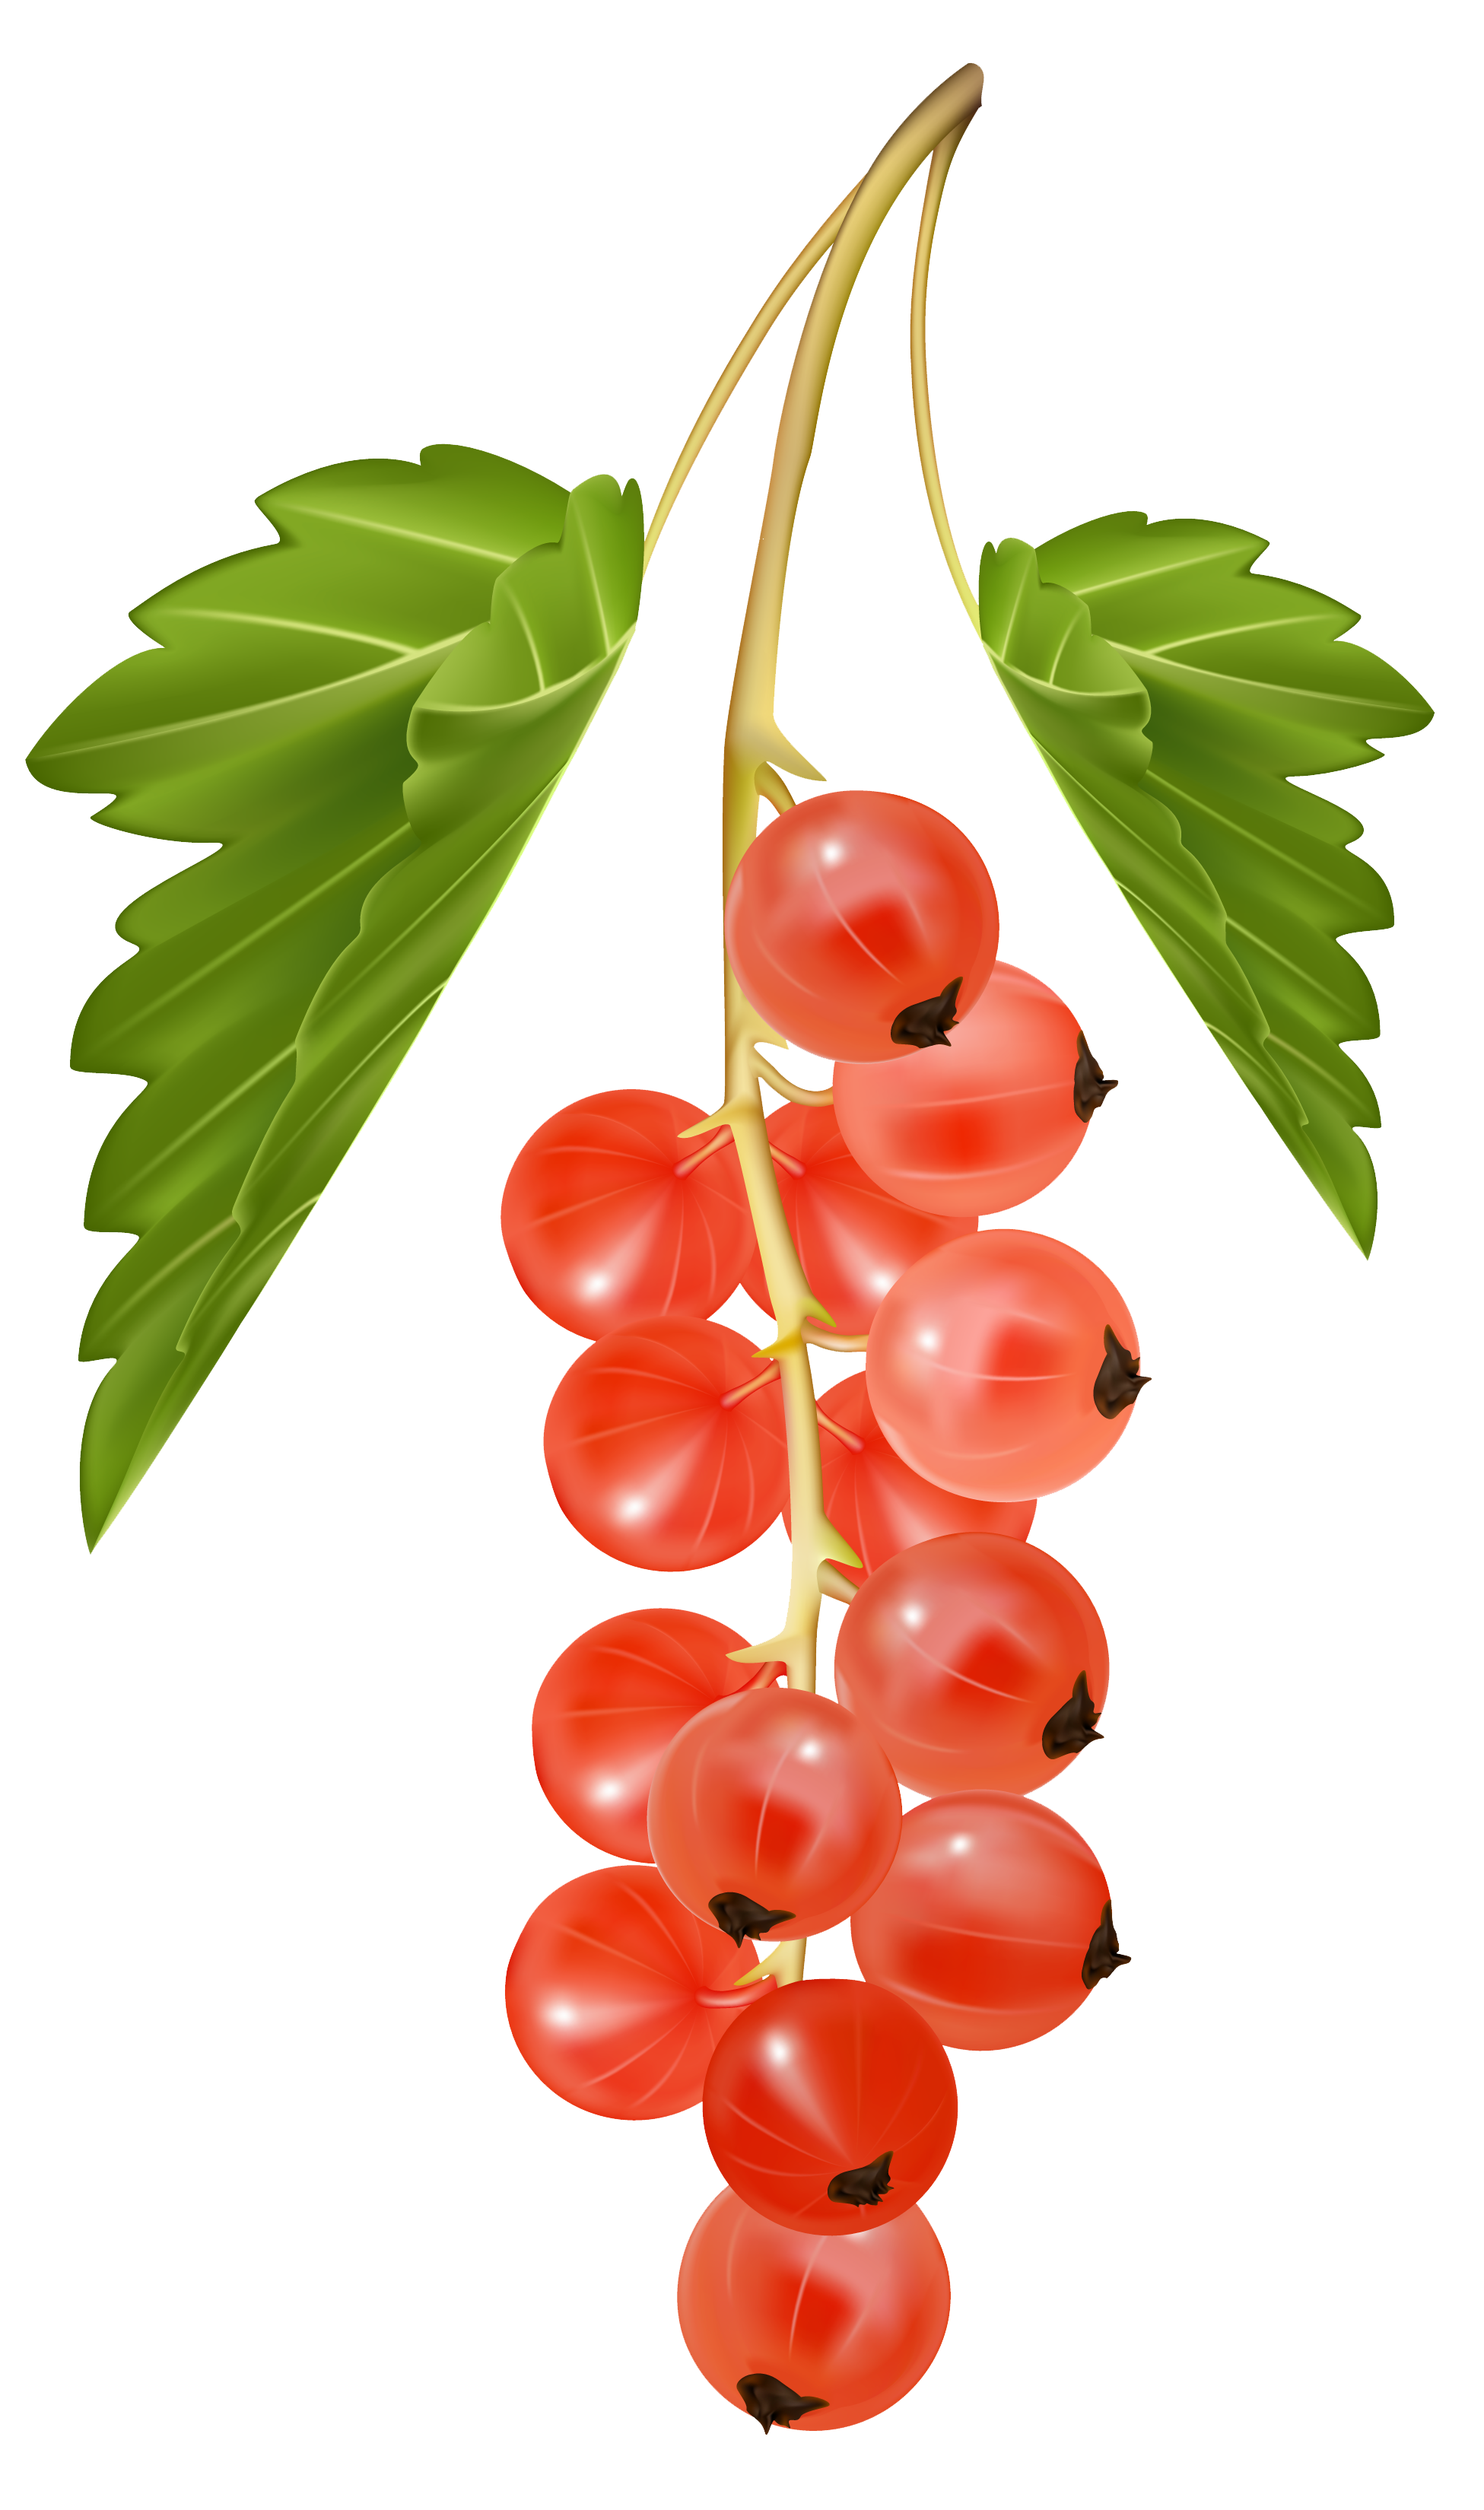 Red Currant PNG Vector Clipart Image.